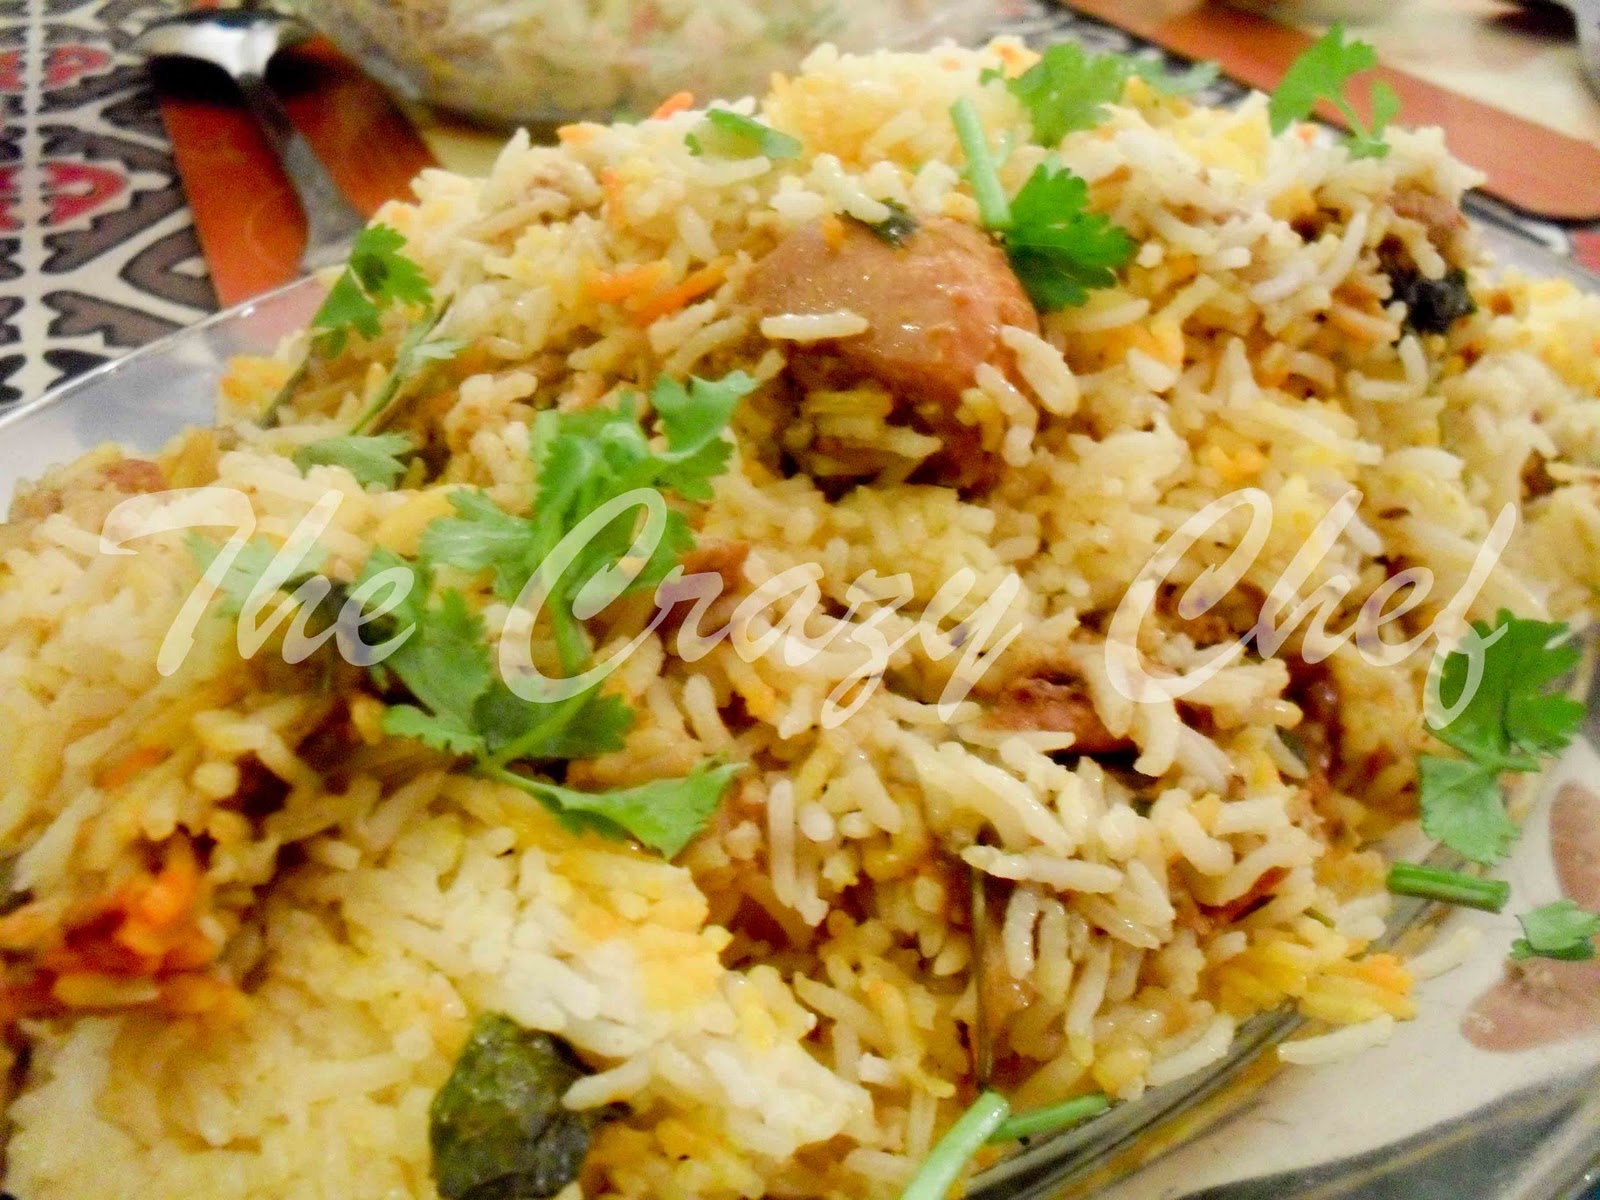 Chicken Biryani Hd Chicken biryani